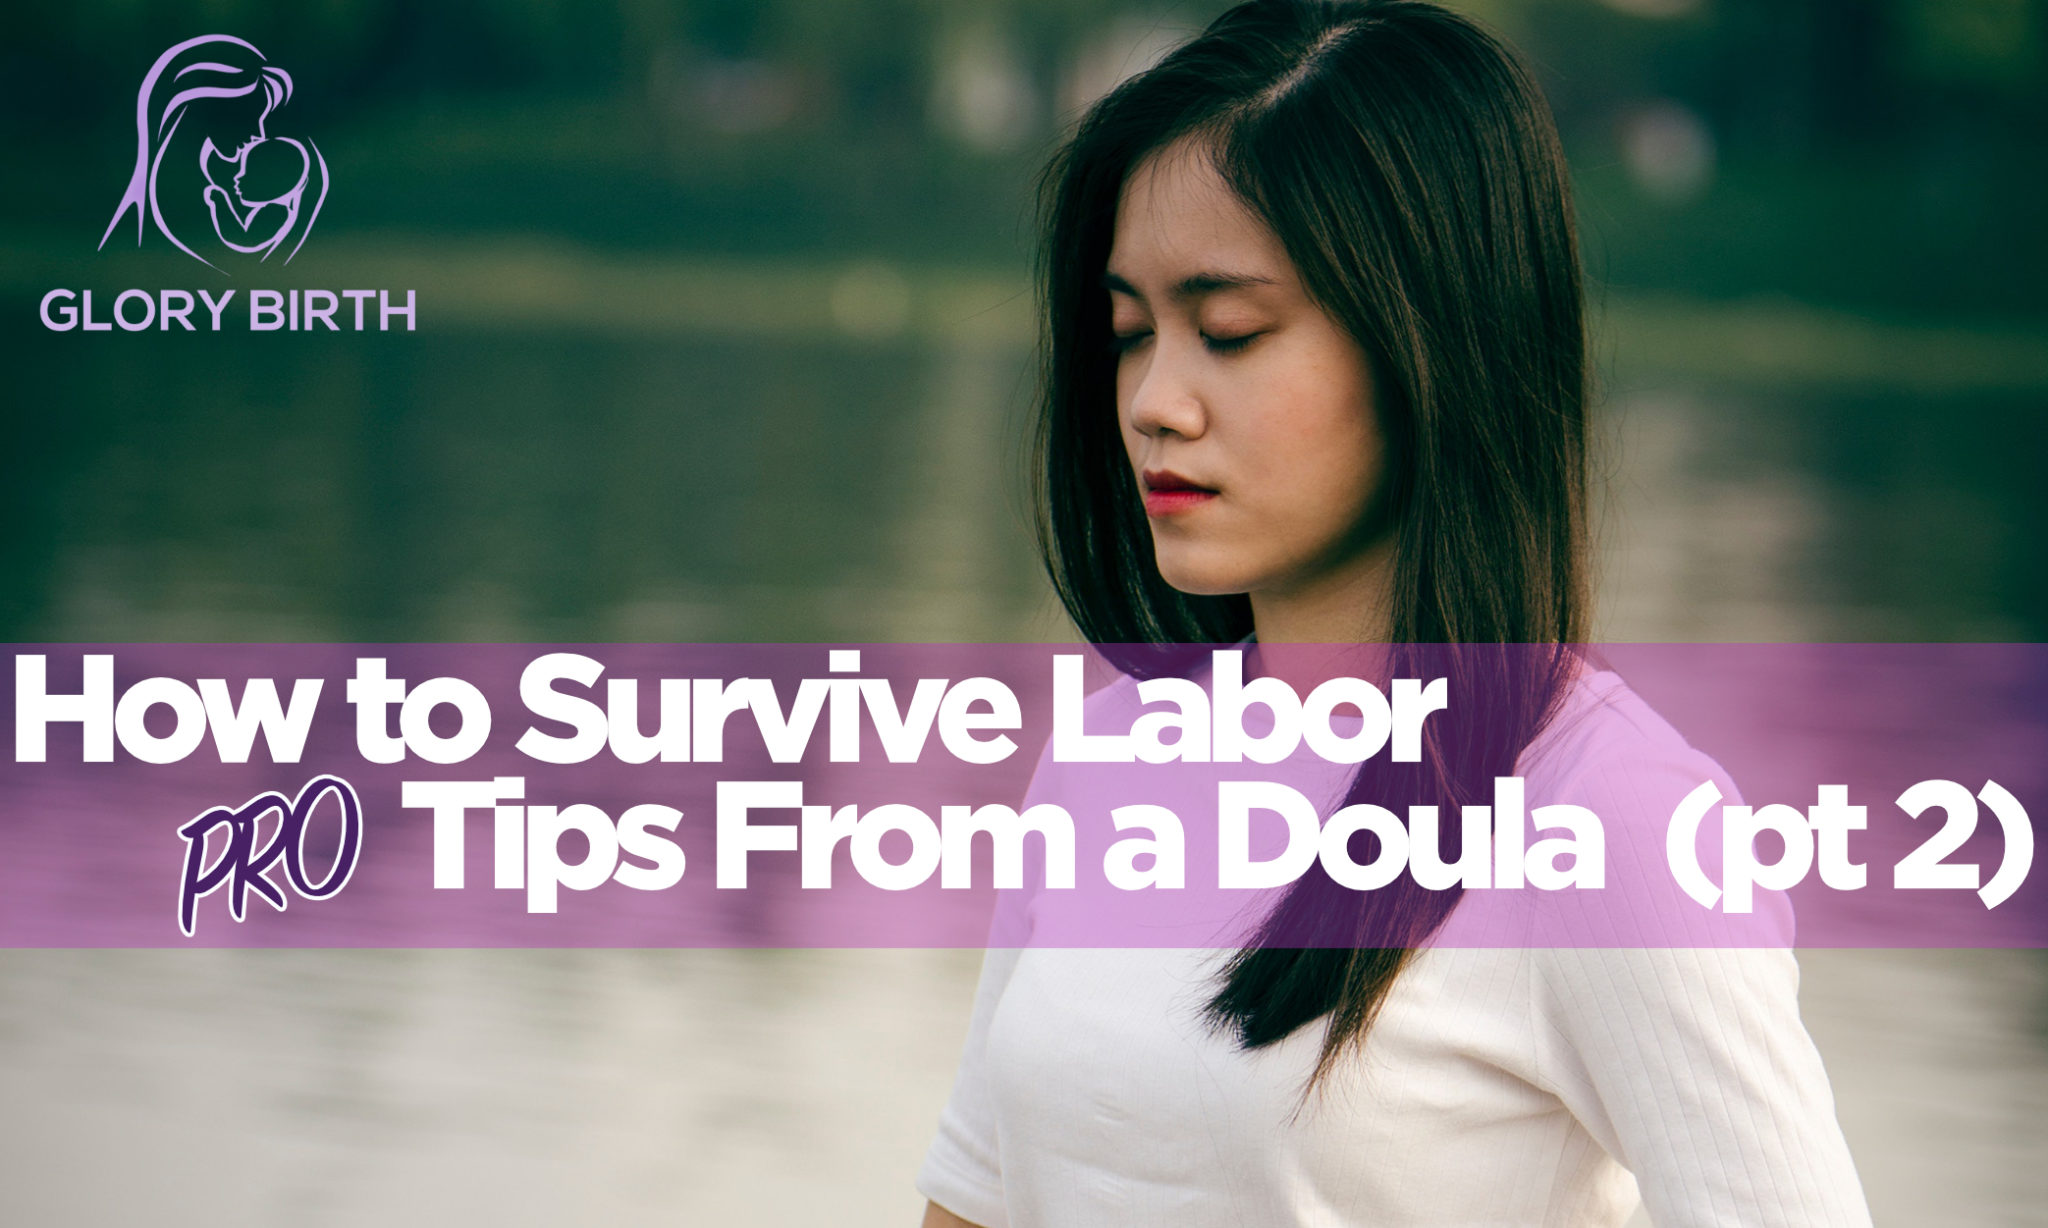 How to Survive Labor - Tips From a Doula (pt2)